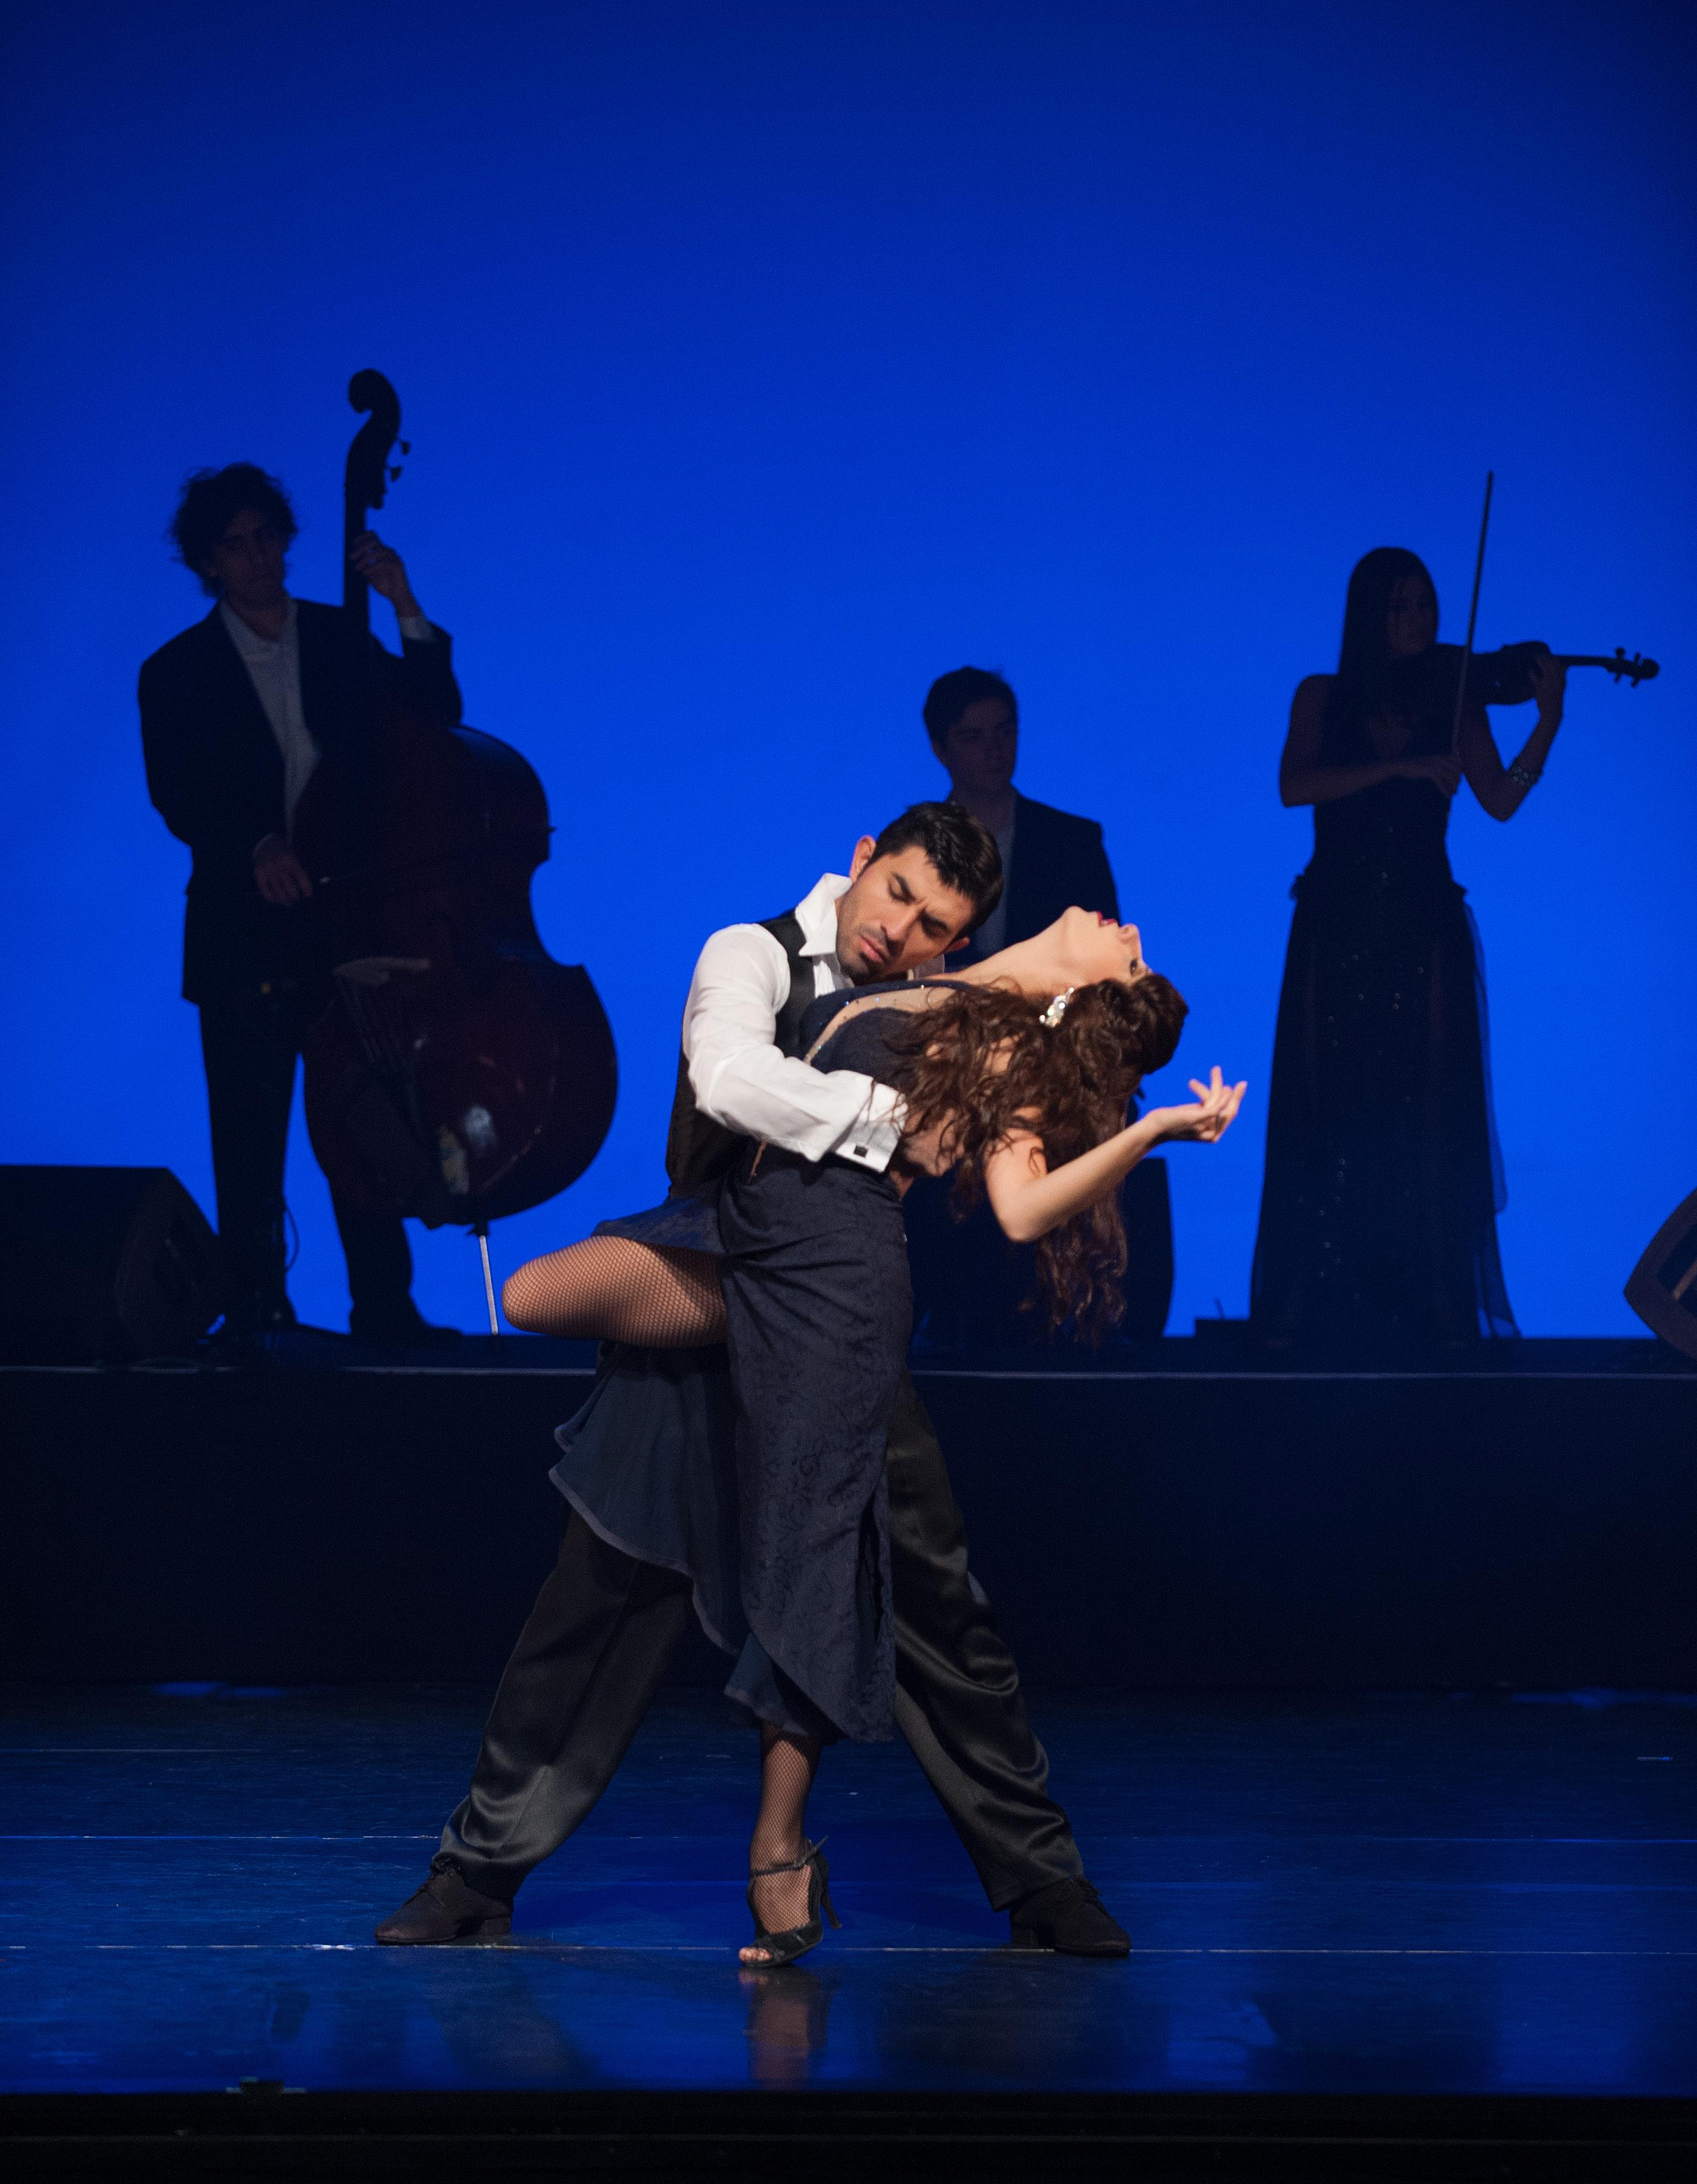 BWW Reviews: TANGO FIRE Ignites Audiences at Winter Garden Theatre